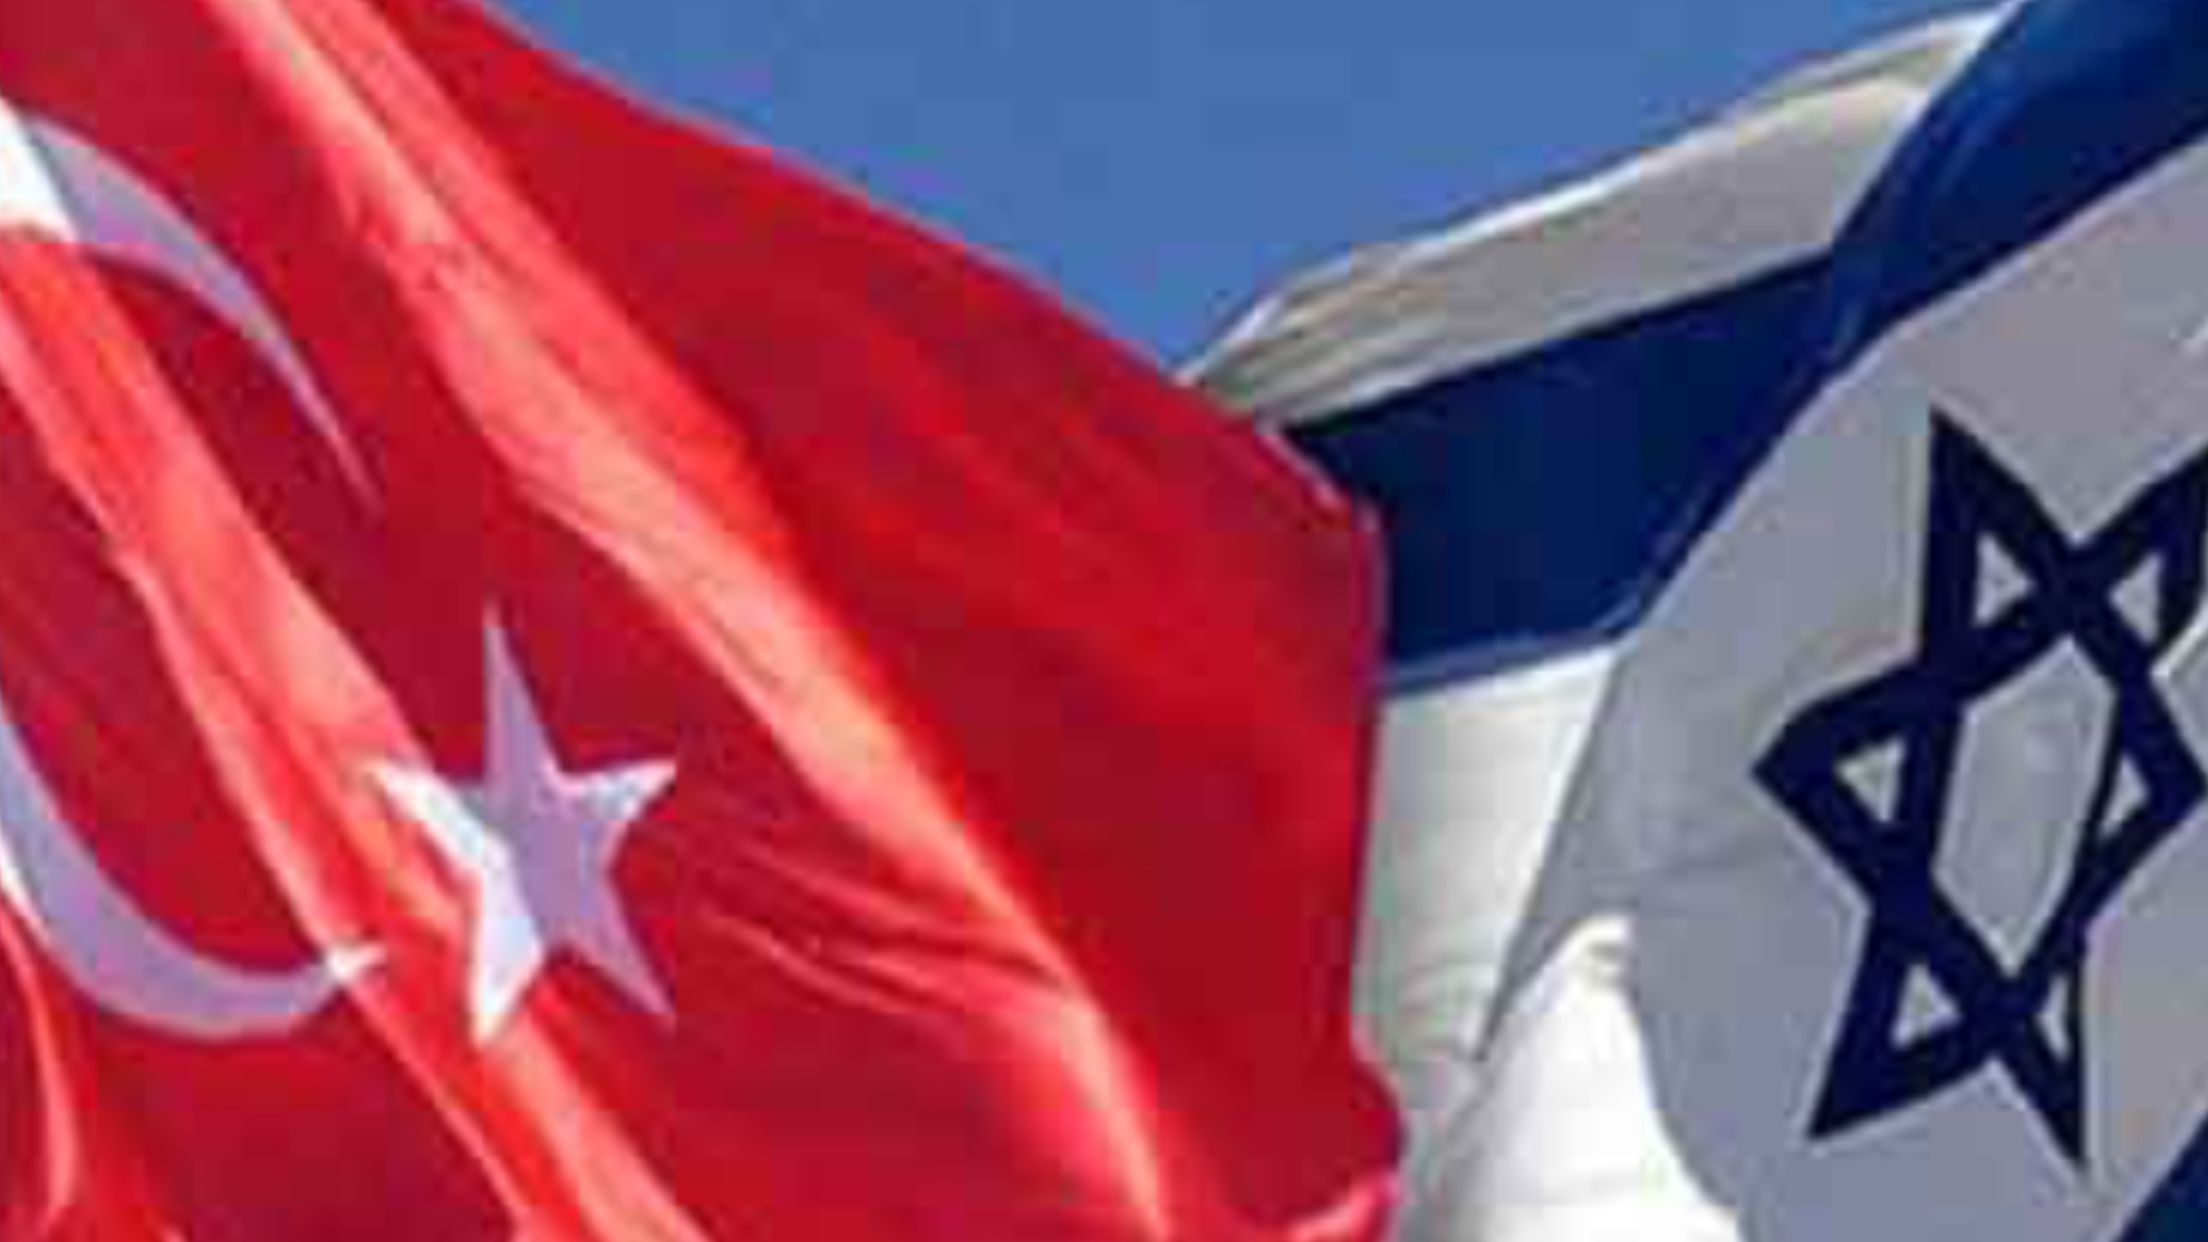 The analysis of developments in relations between Turkey and  Israel